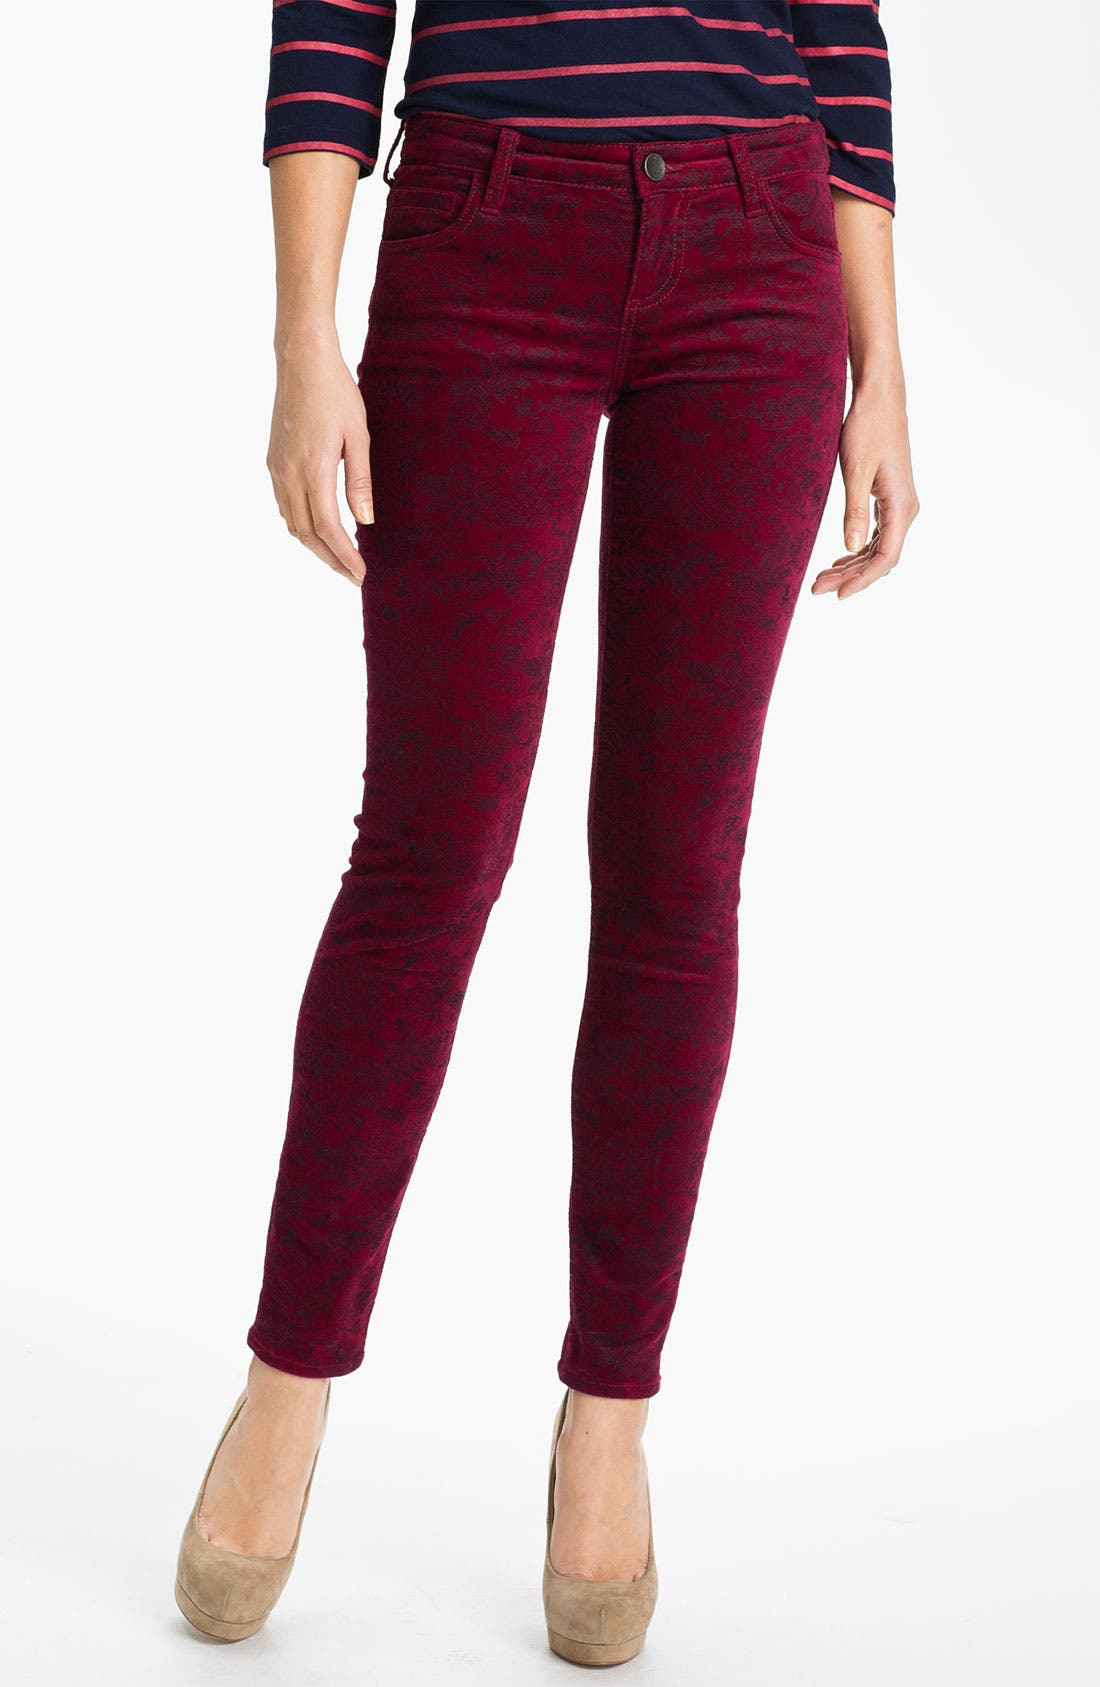 Main Image - KUT from the Kloth Velveteen Skinny Jeans